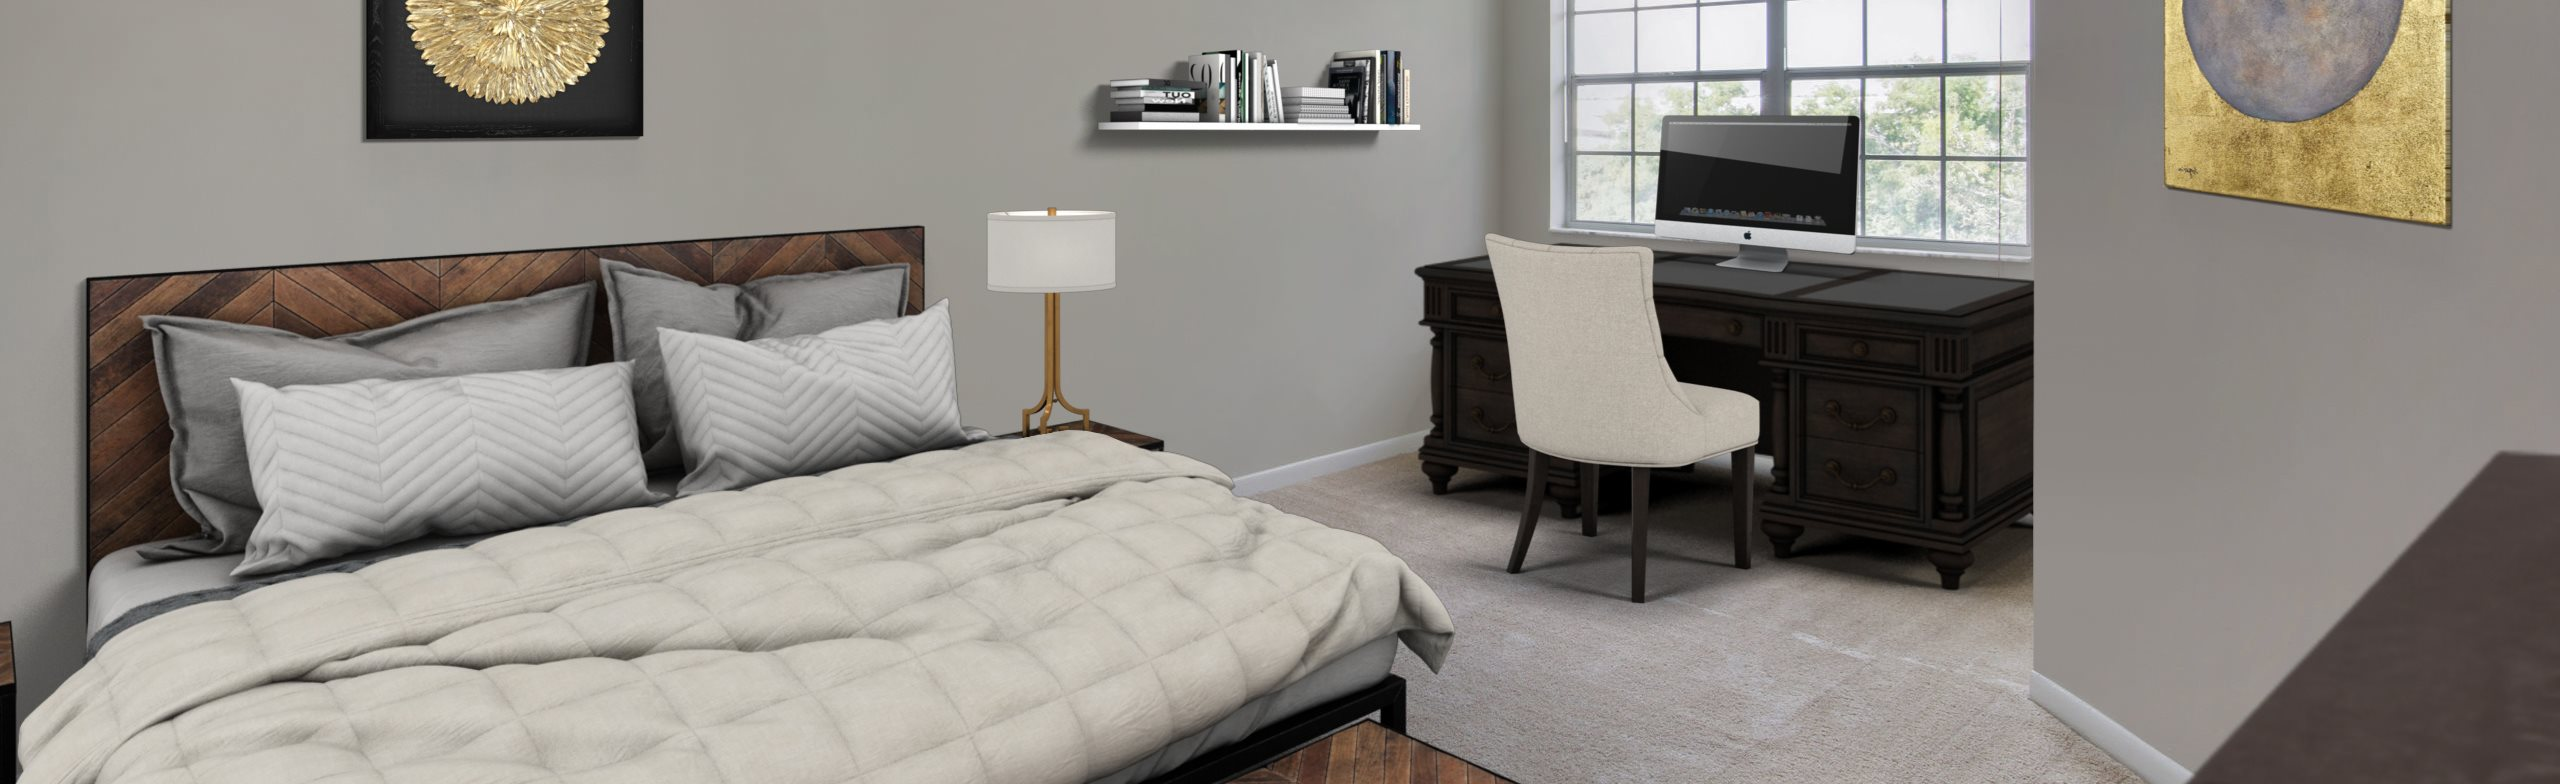 Virtual staged model apartment, bedroom